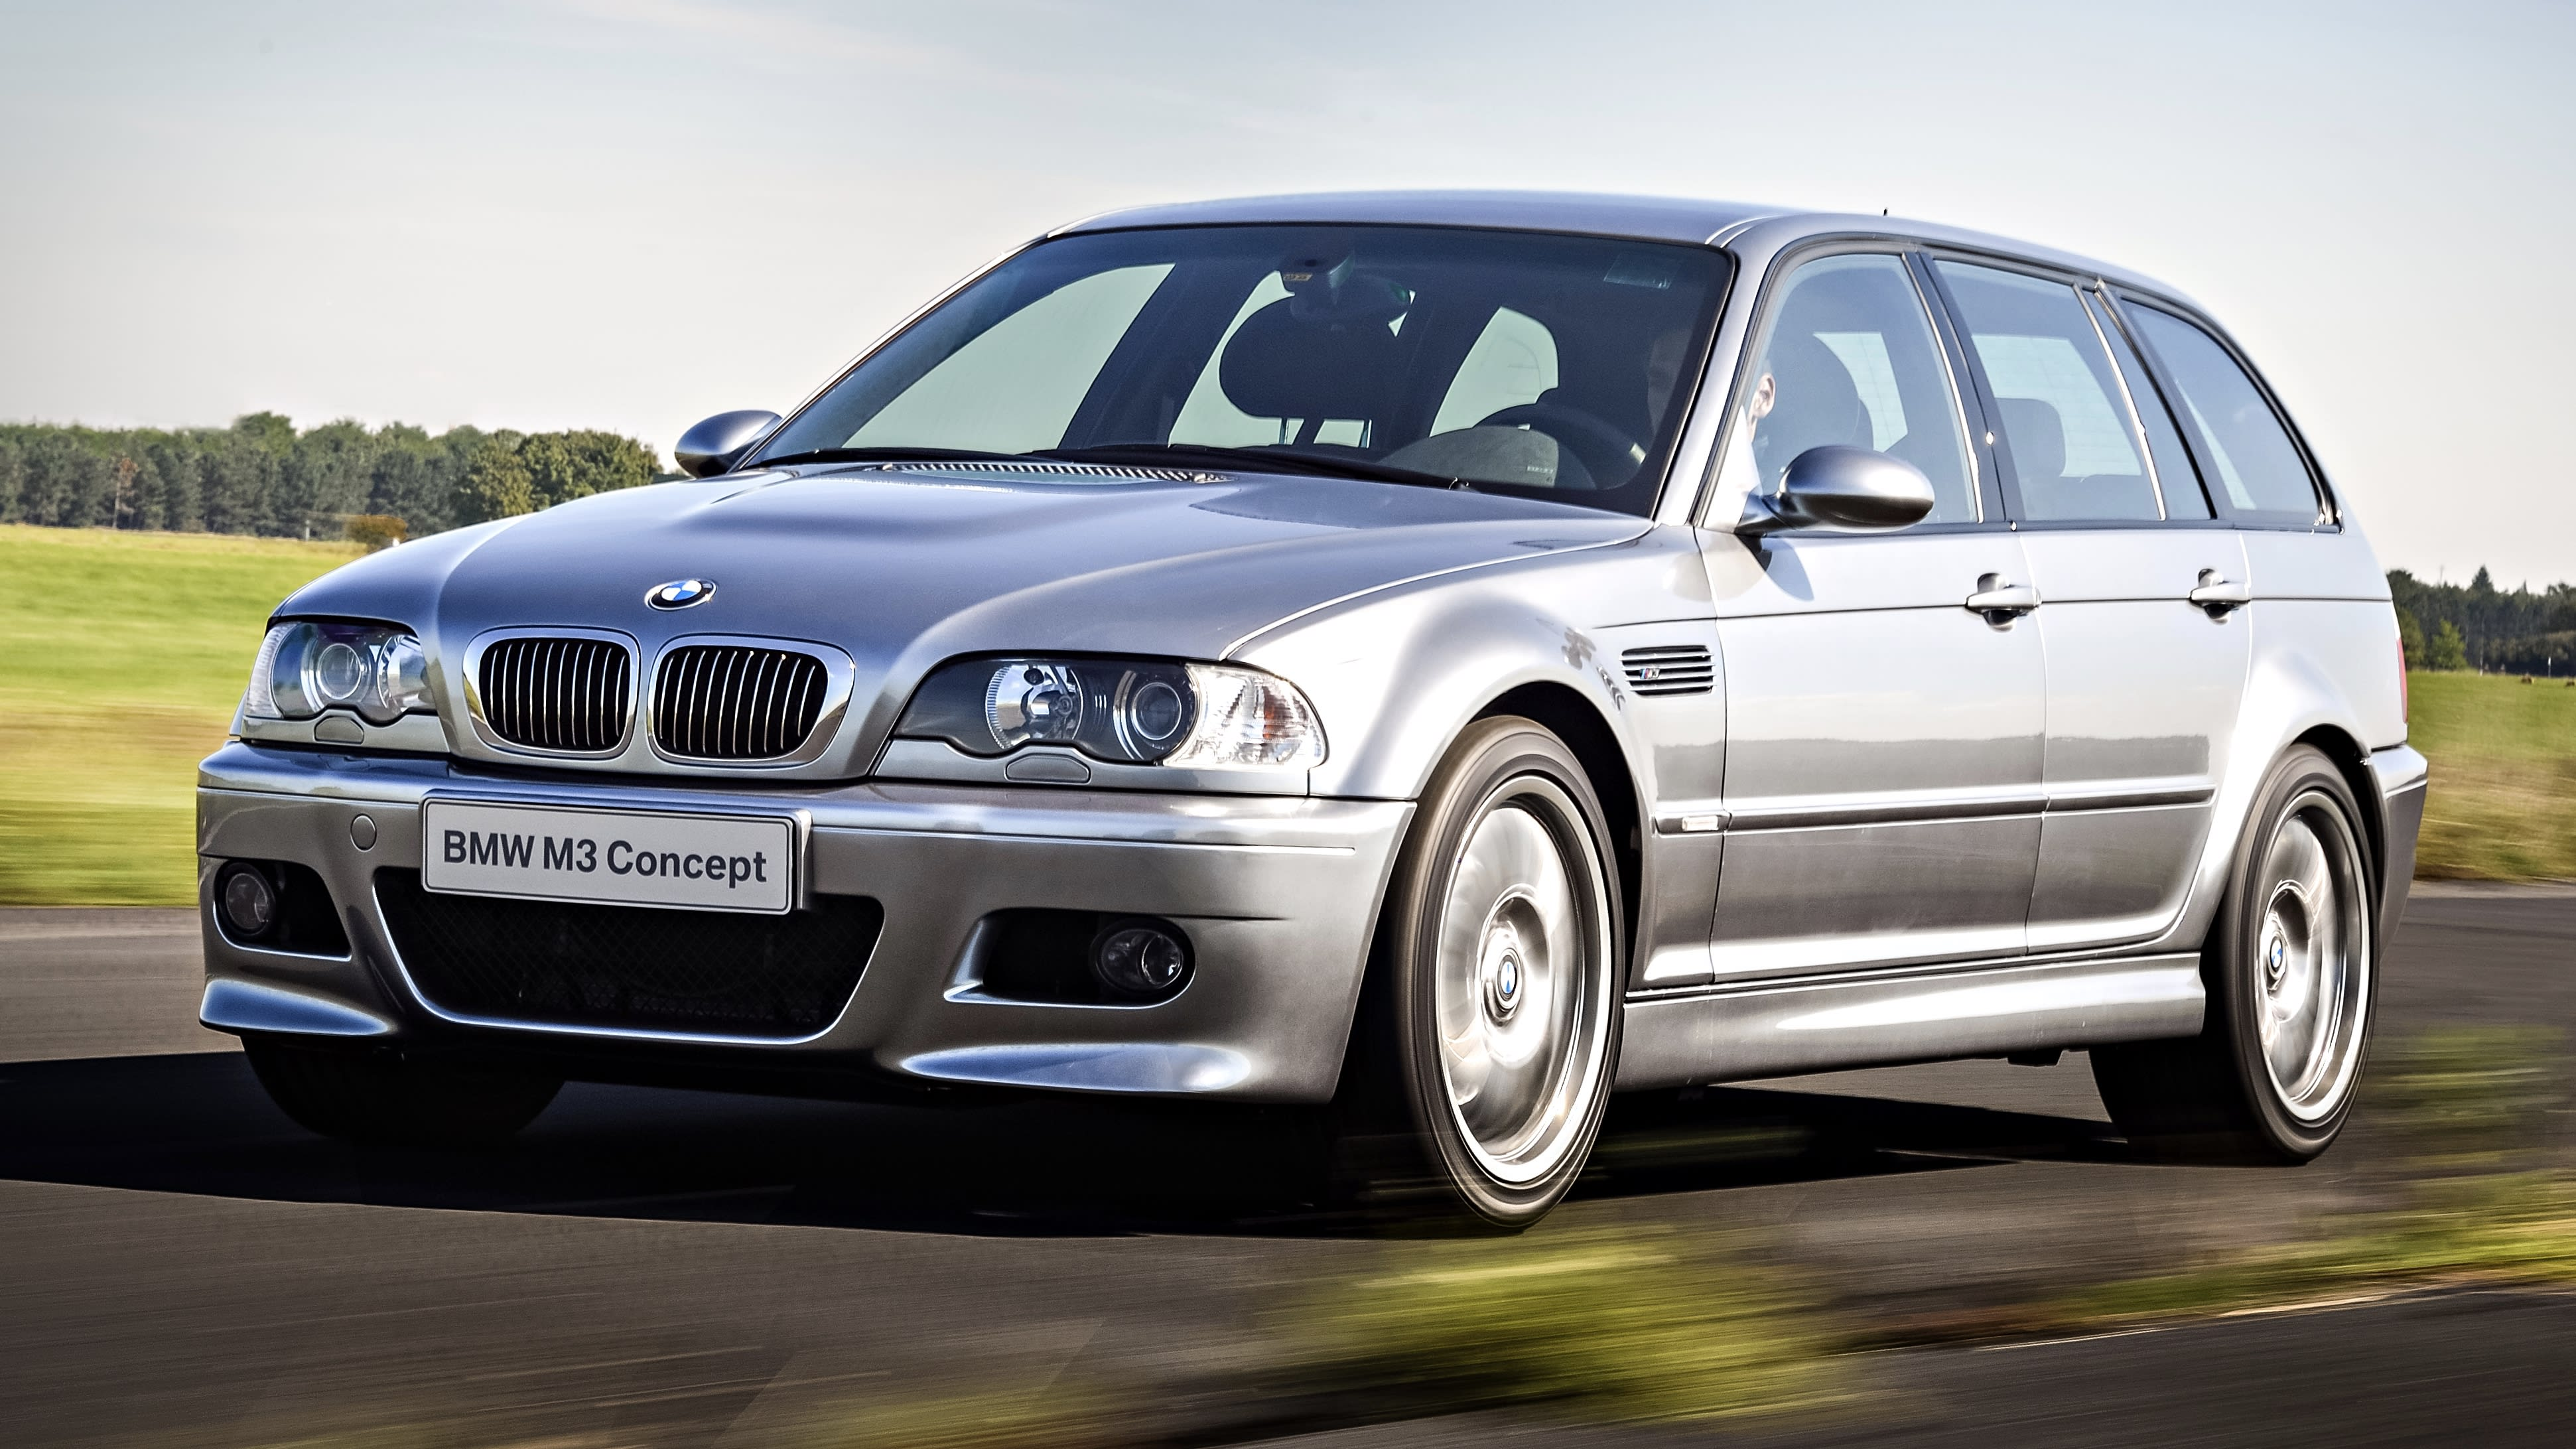 2023 Bmw M3 Touring Wagon Coming To Australia Update Caradvice